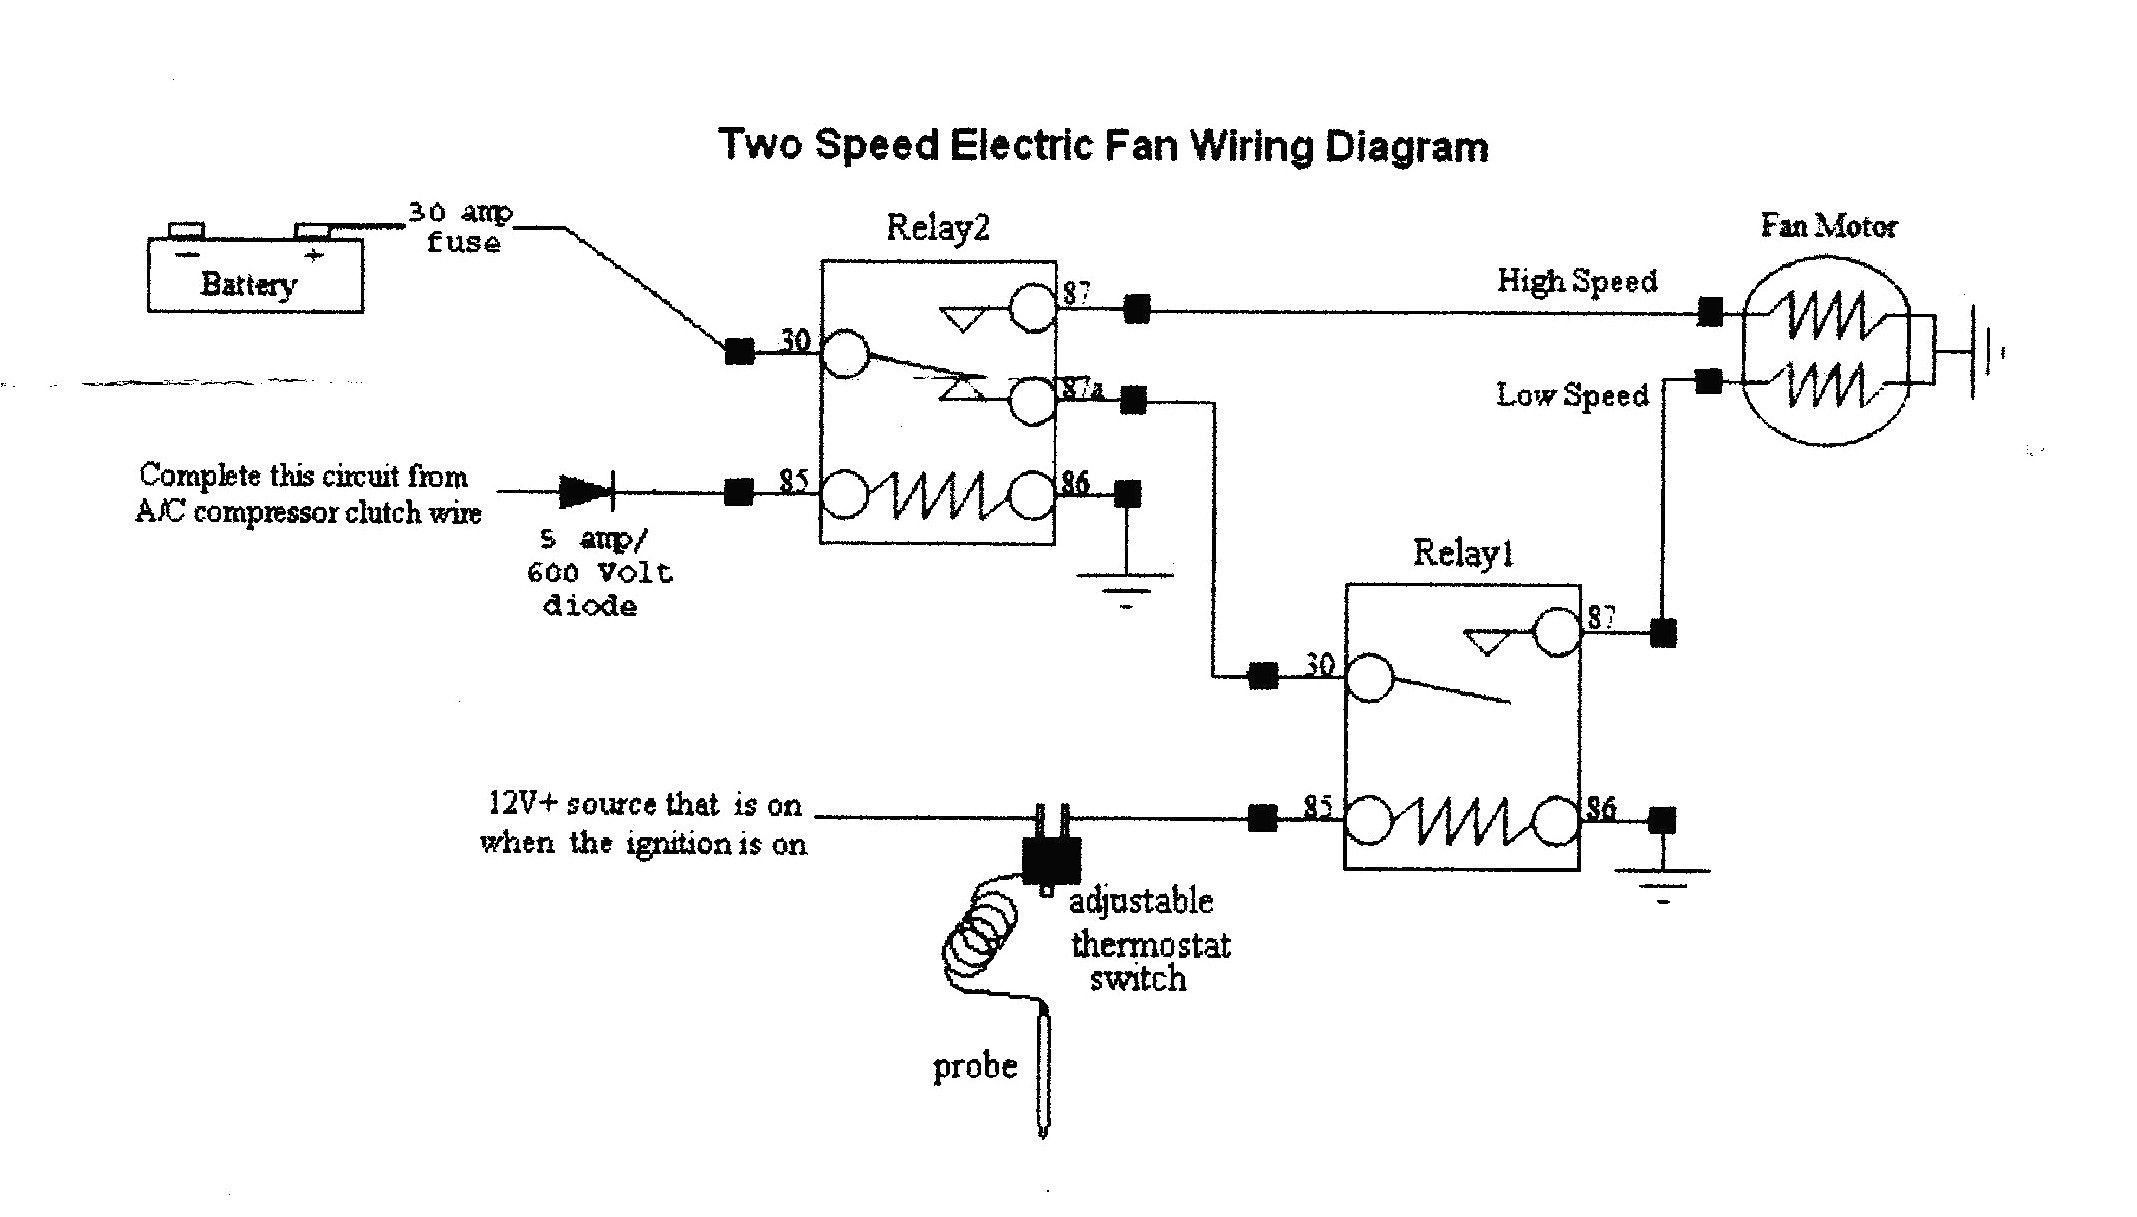 Wiring Diagram For Two Speed Attic Fan Switch In 2020 Thermostat Wiring Electric Fan Thermostat